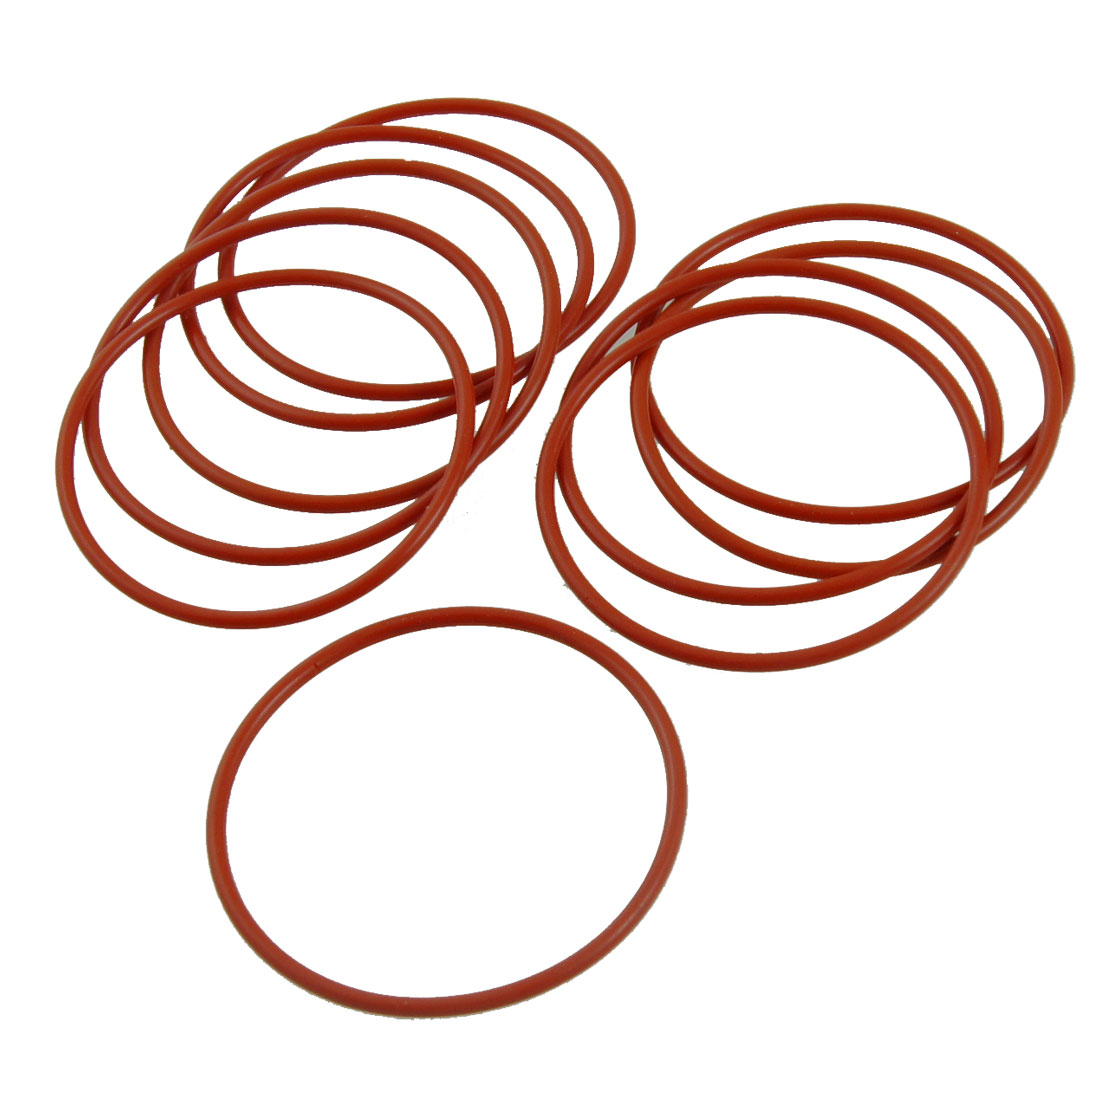 10 Pcs 50mm OD 2mm Thickness Red Silicone O Ring Oil Seals